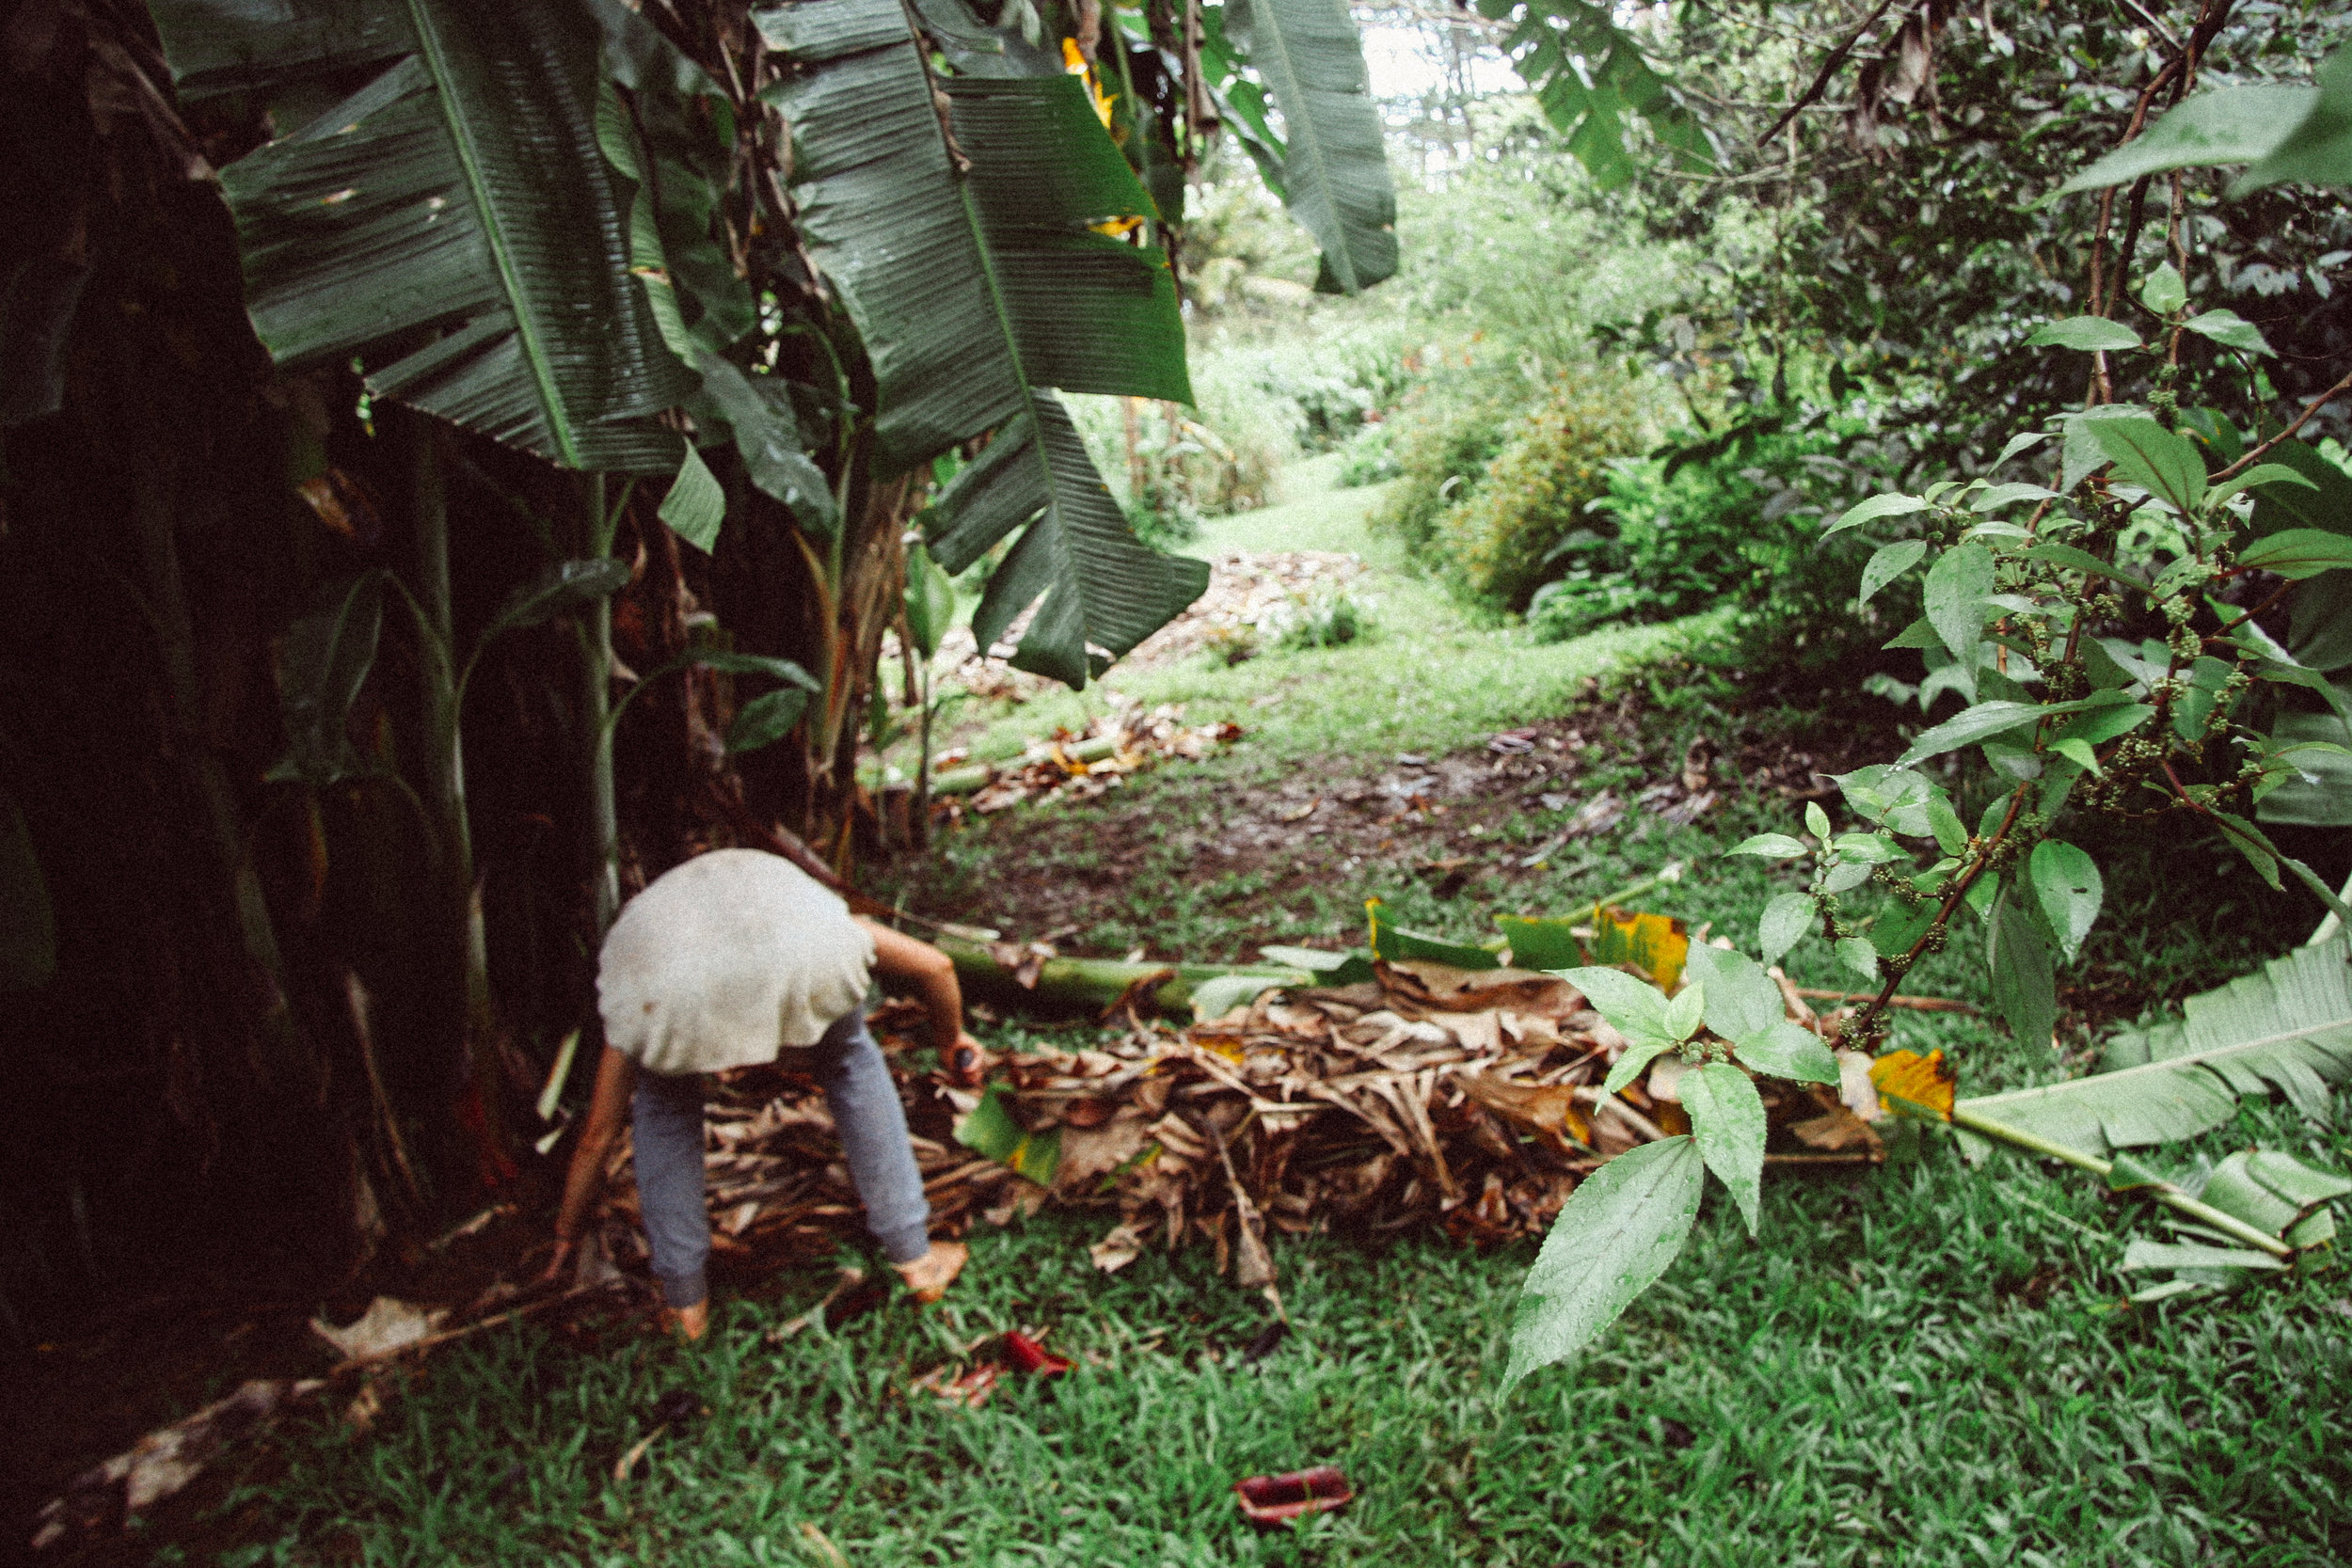 cutting down Banana,  Musa spp.  (Musaceae)for mulching guilds